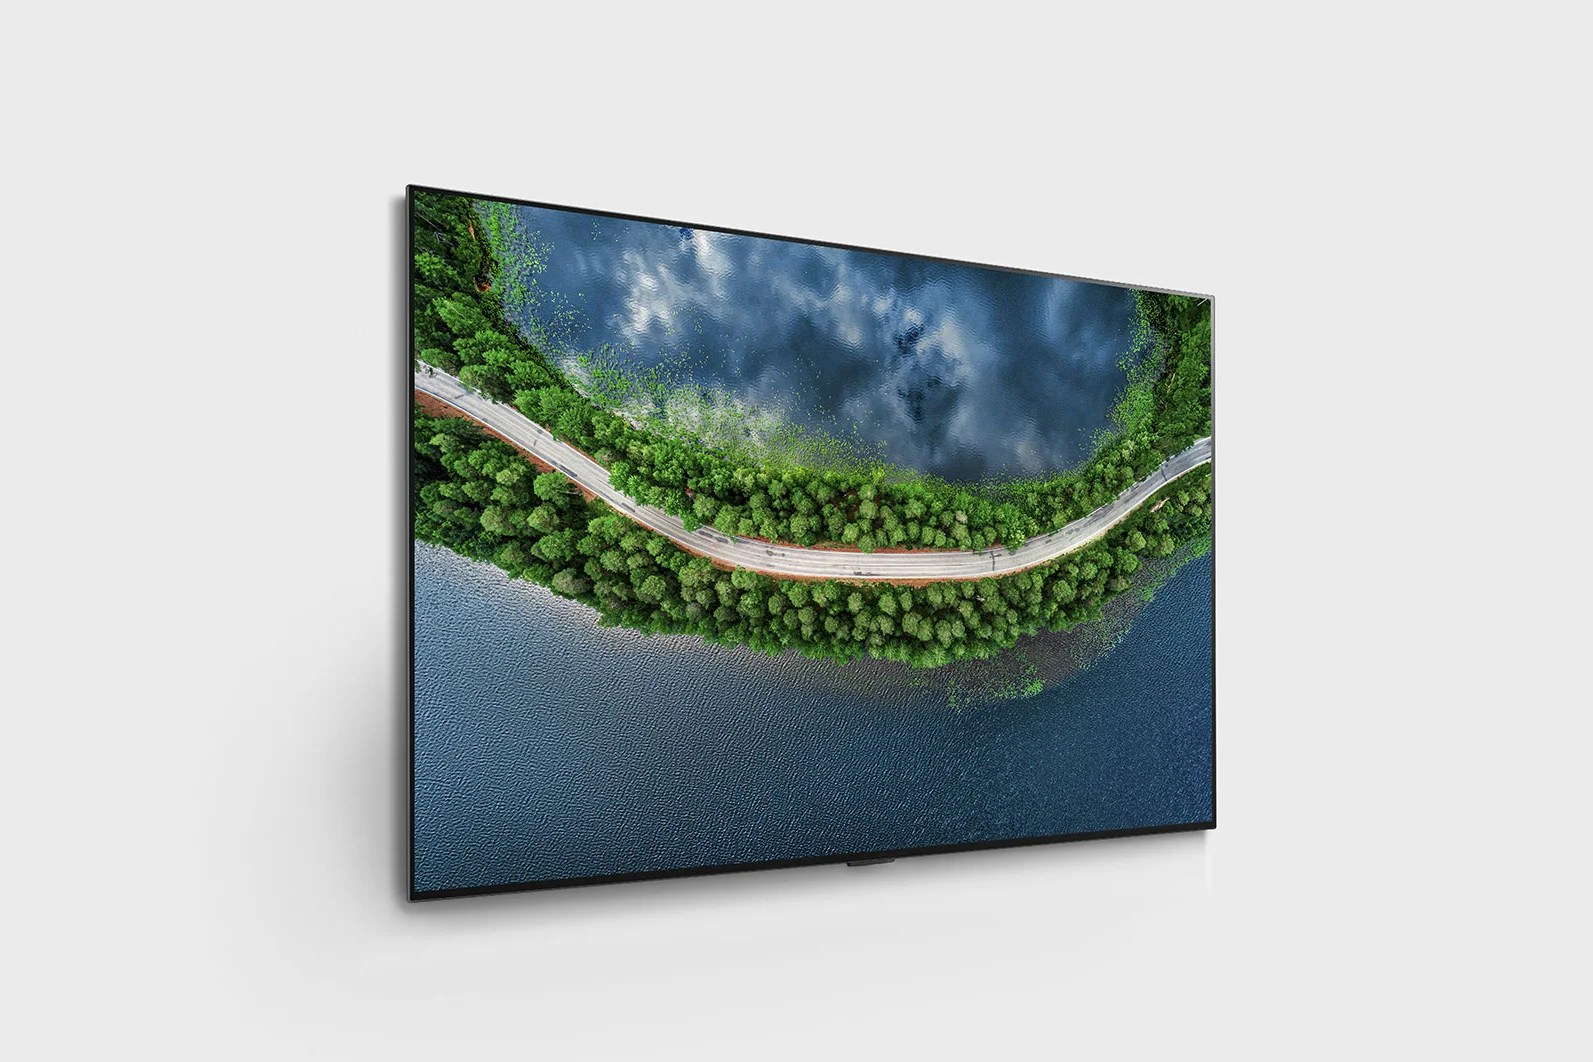 GX Gallery Series 4K Every OLED and NanoCell TV announced so far